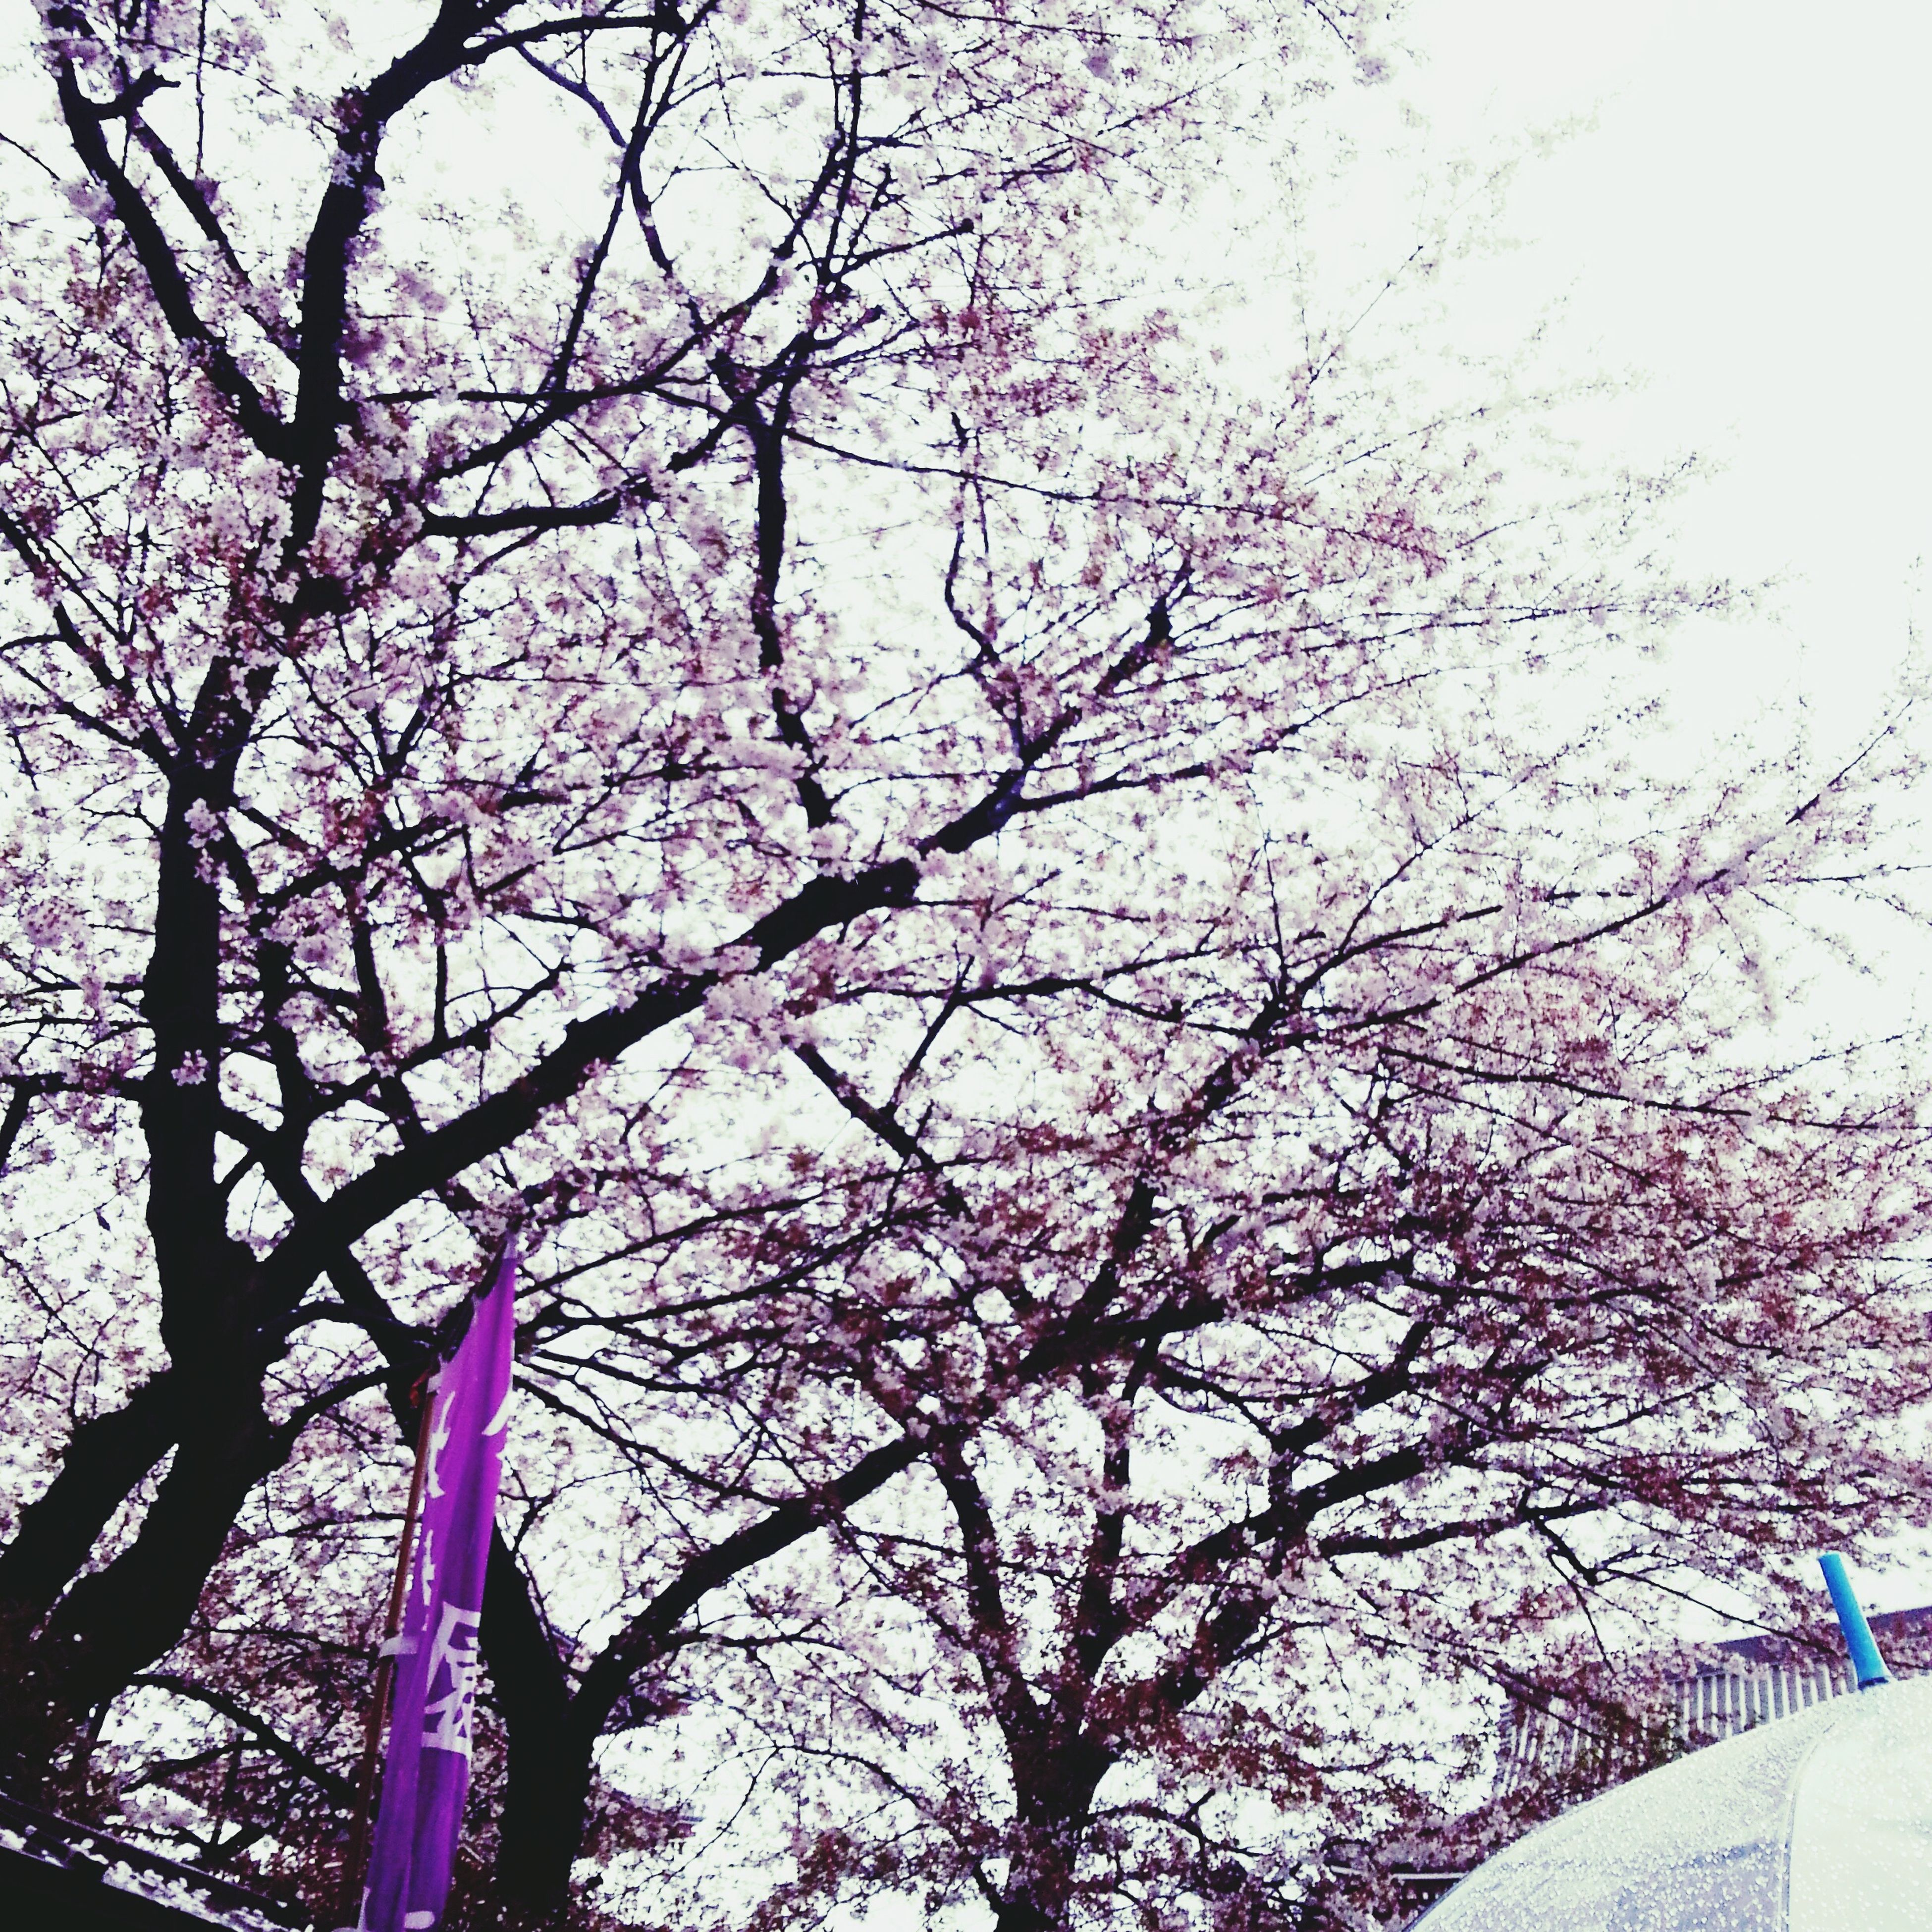 tree, low angle view, flower, branch, growth, sky, cherry blossom, nature, pink color, cherry tree, beauty in nature, day, blossom, outdoors, clear sky, fragility, freshness, no people, springtime, built structure